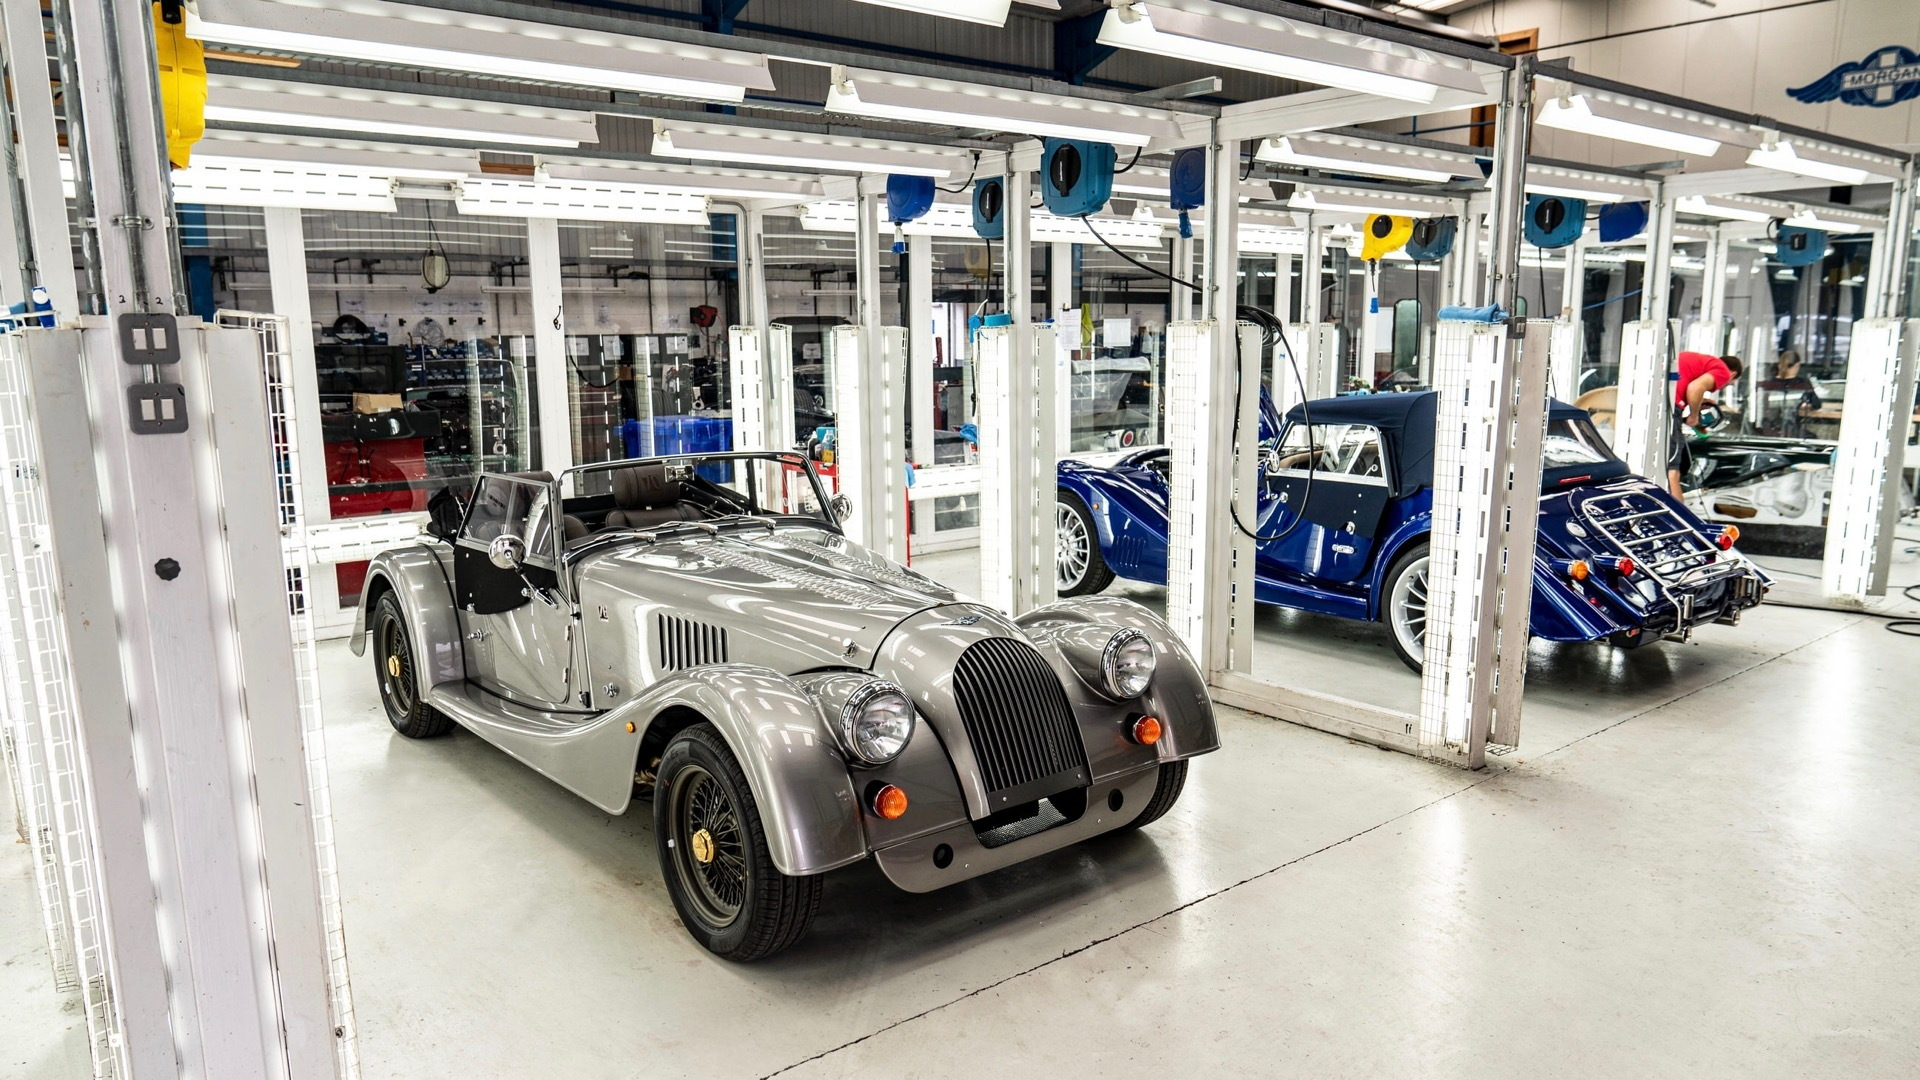 Last steel-chassis Morgan